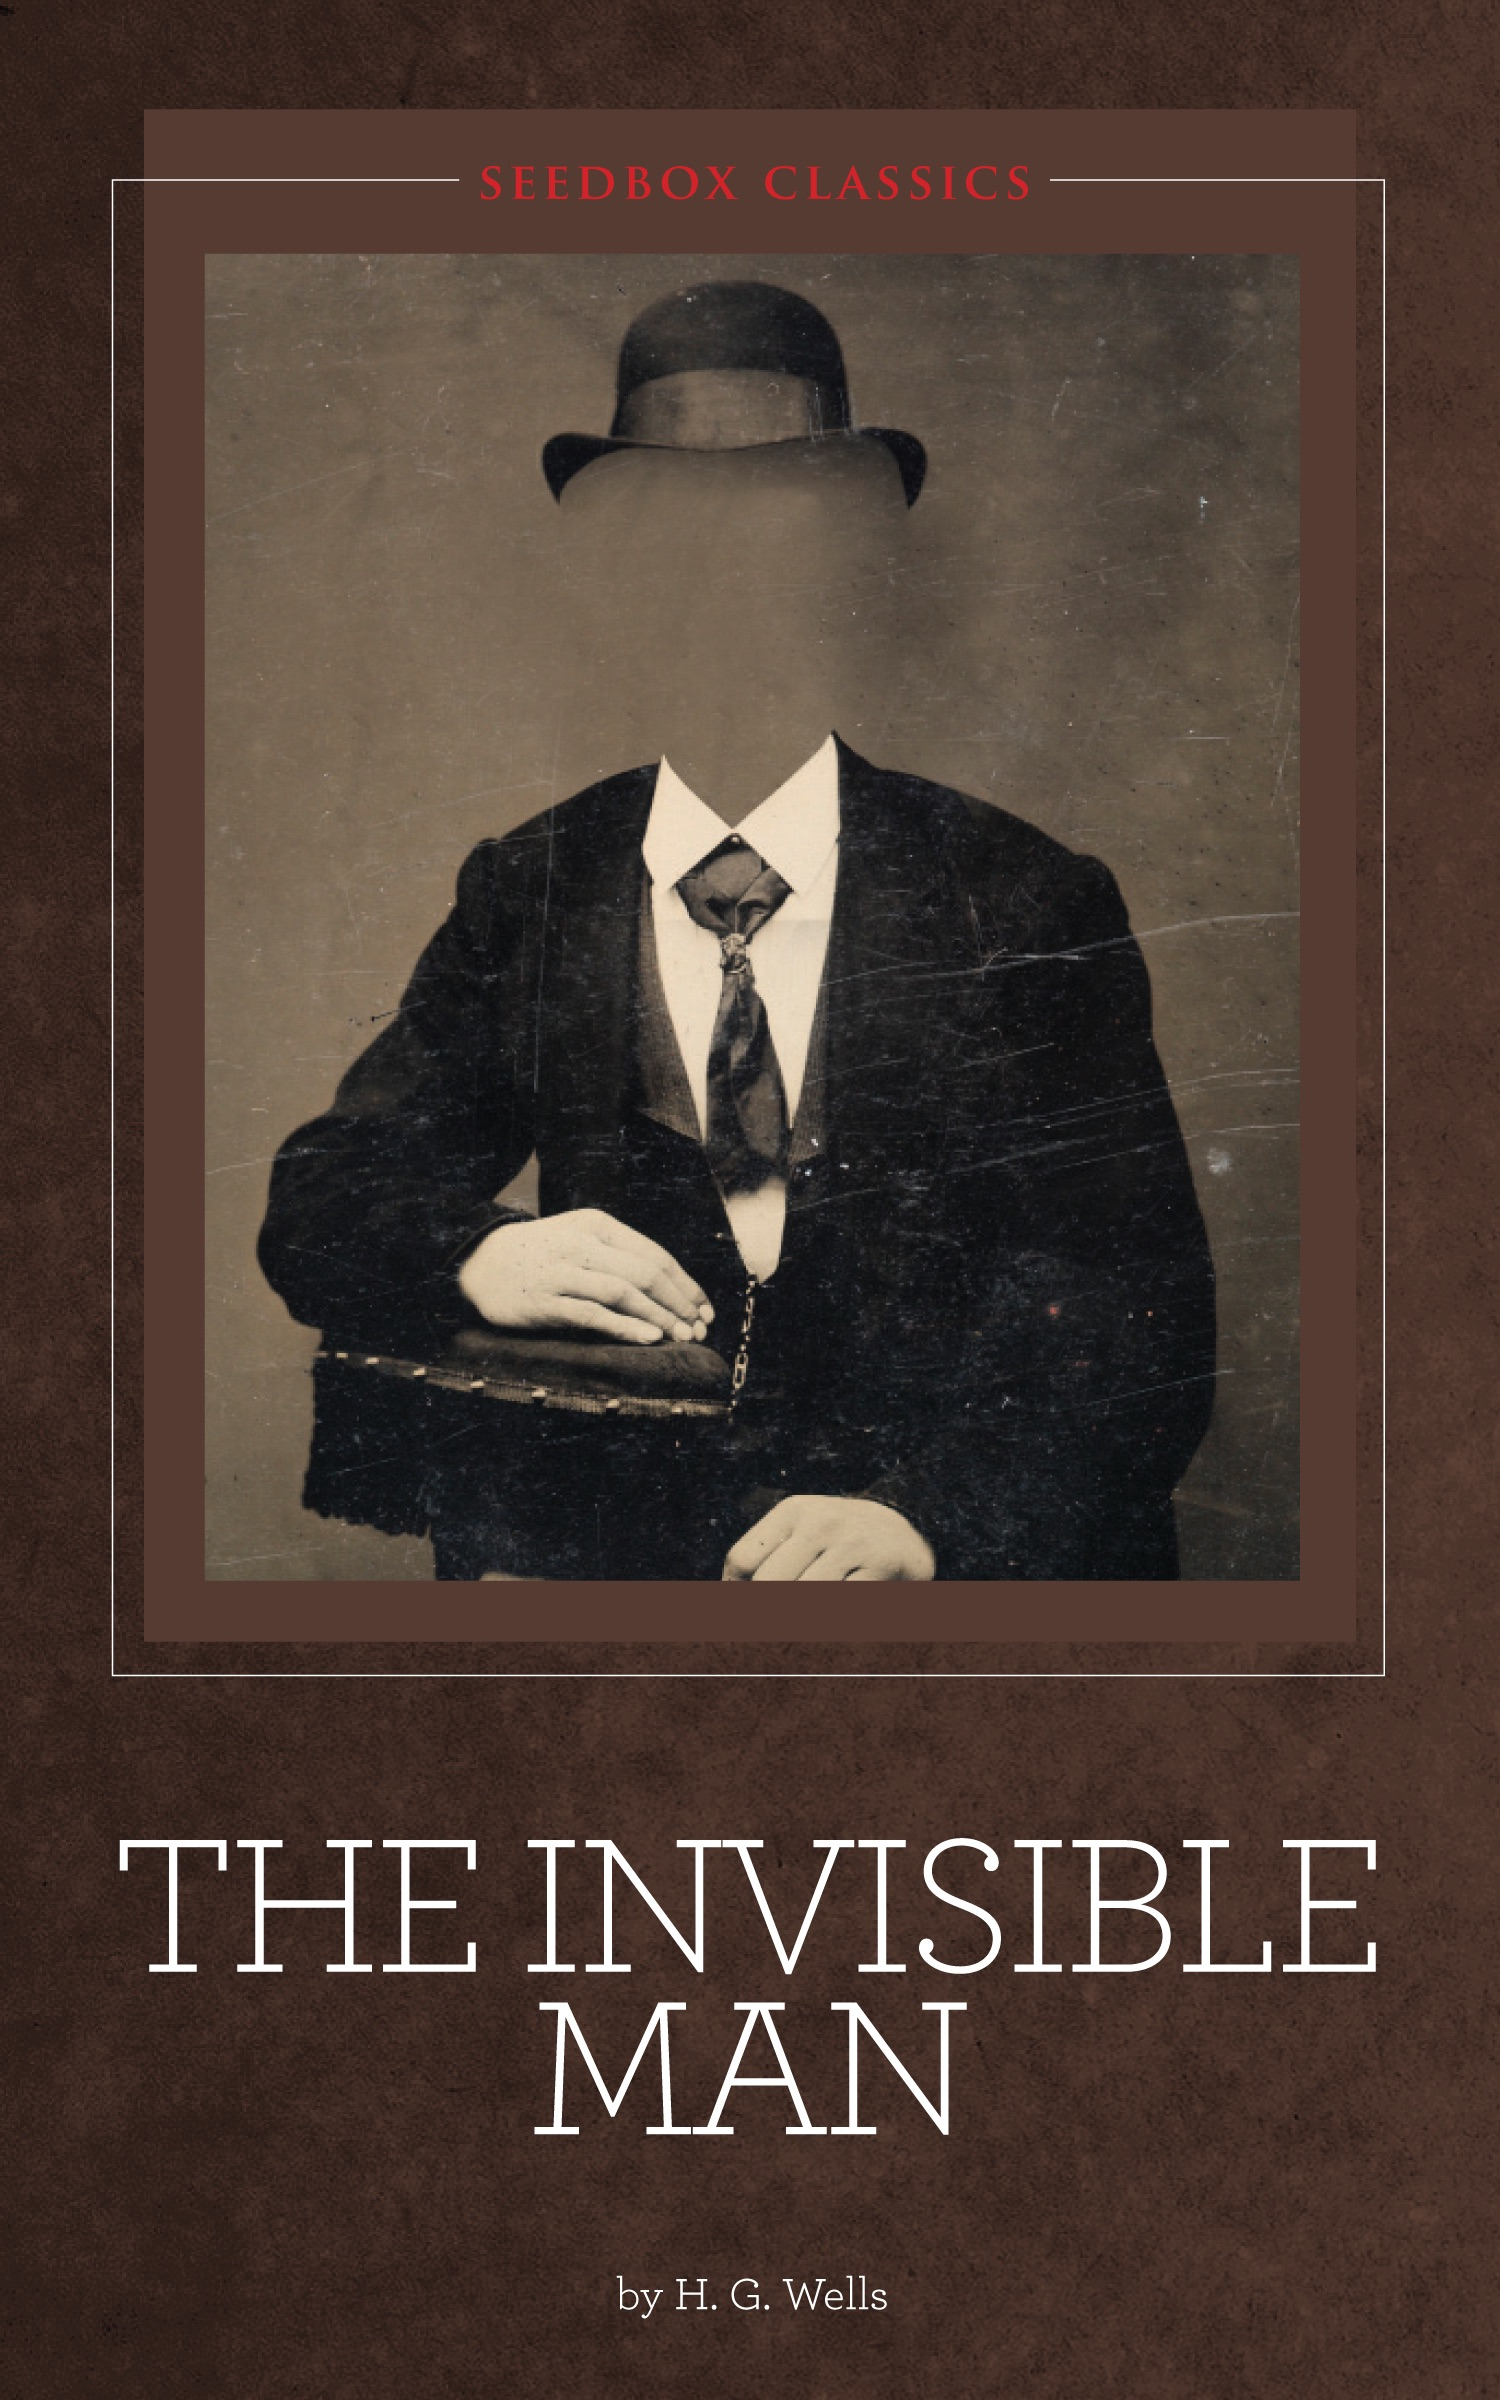 invisible man essay on identity In ralph ellison's novel, invisible man, comedy plays an important yet   becomes the major pillar of invisible man's reformed cognizance, and in turn his  identity  ellison's numerous essays mention humor frequently, praising it as a  method.